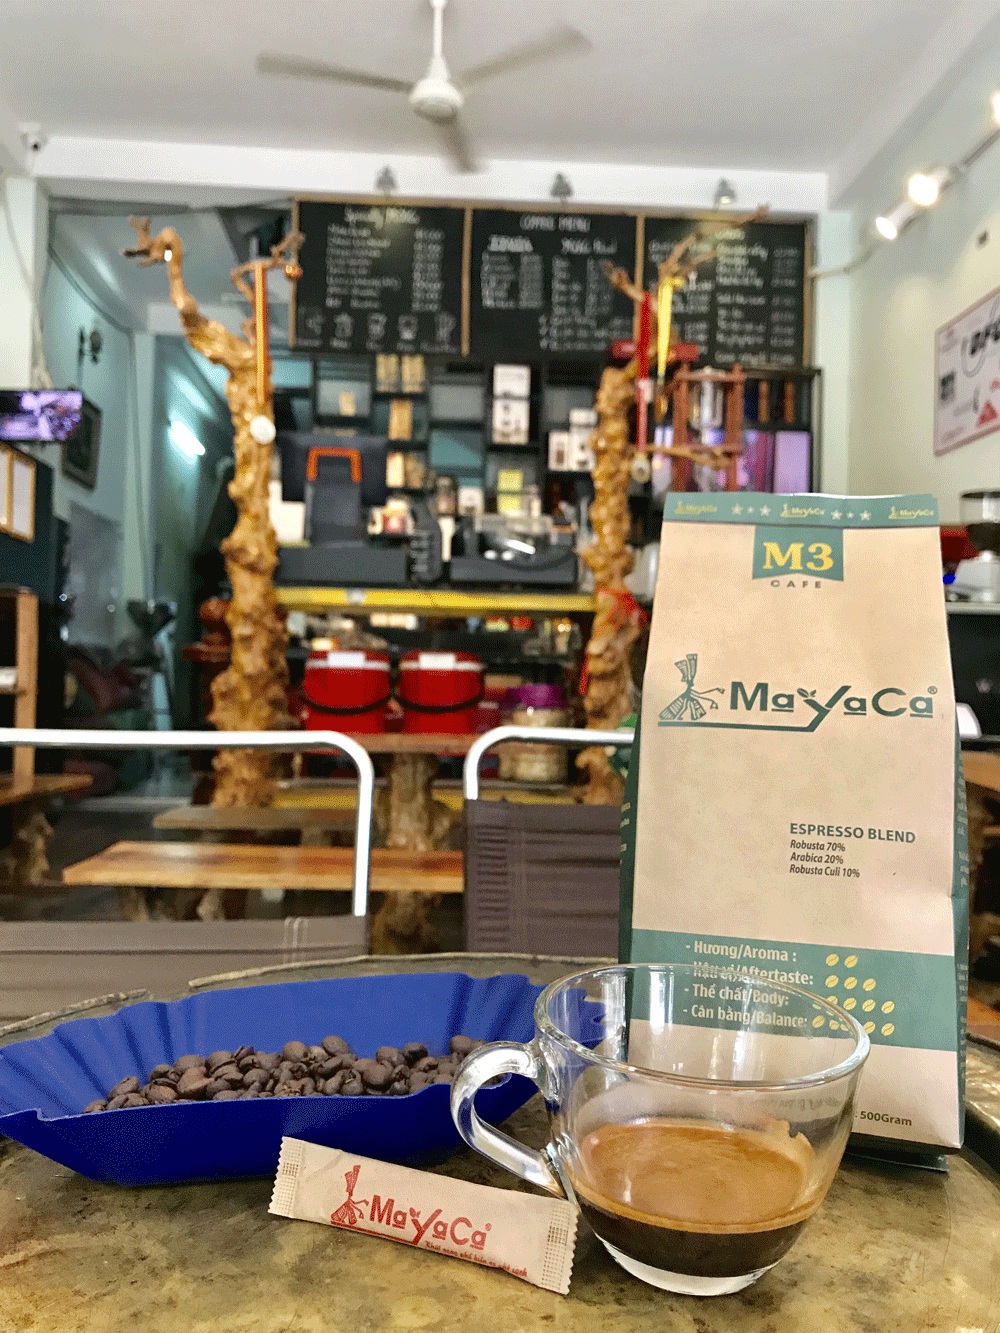 mayaca-coffee-m3-3